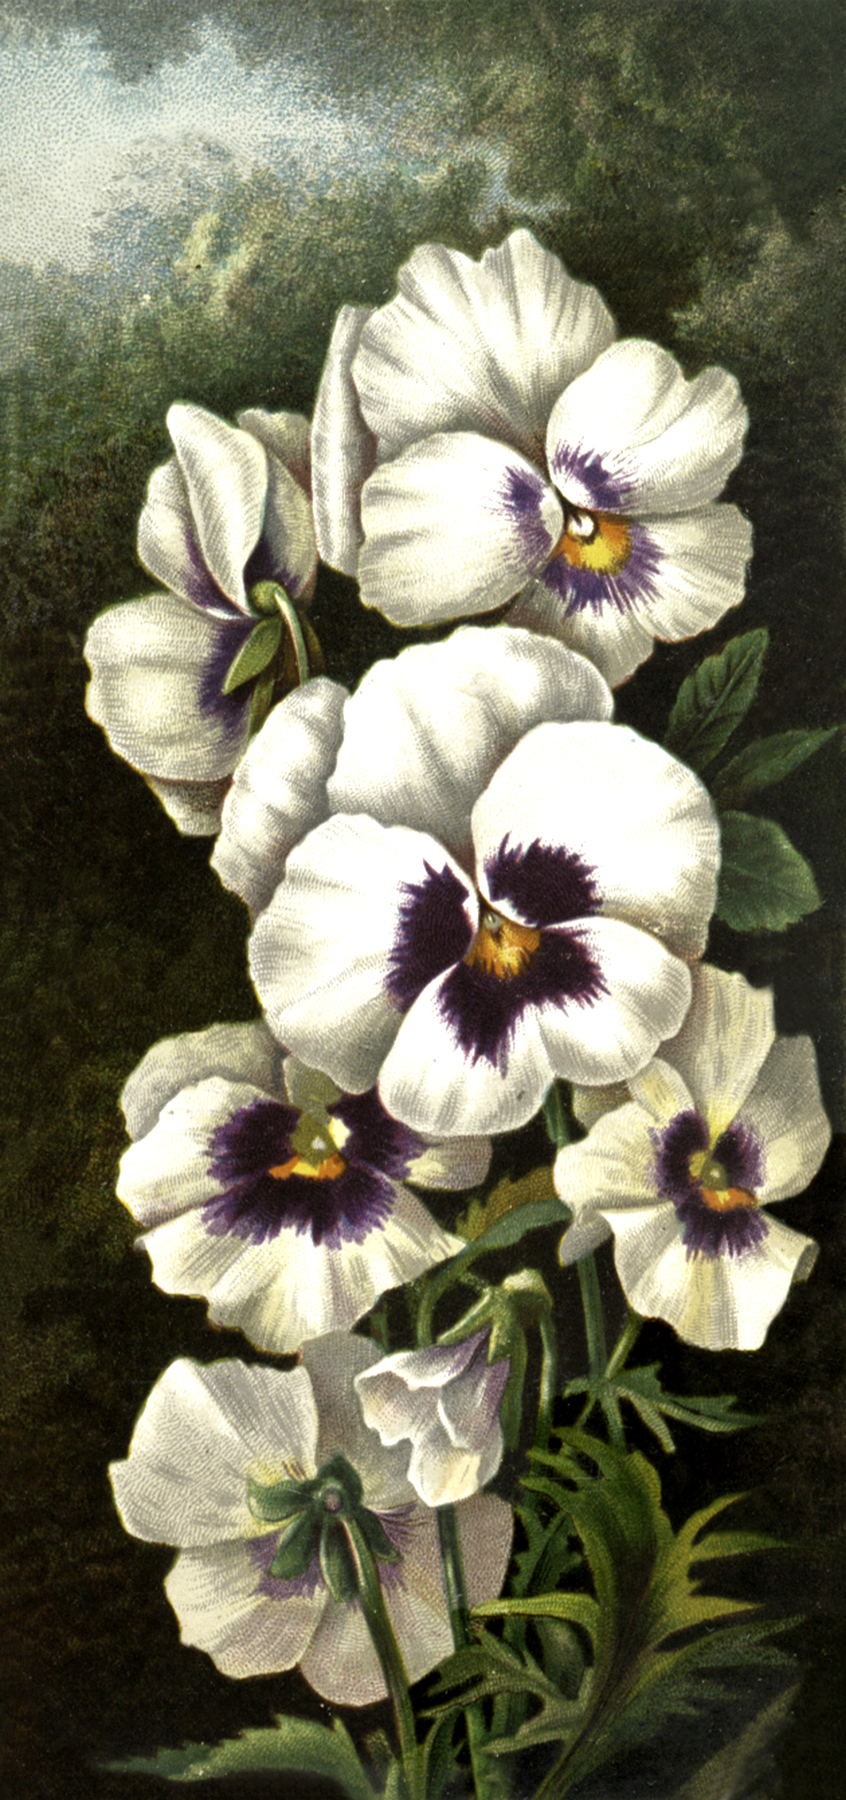 Lovely White and Purple Orchid Image